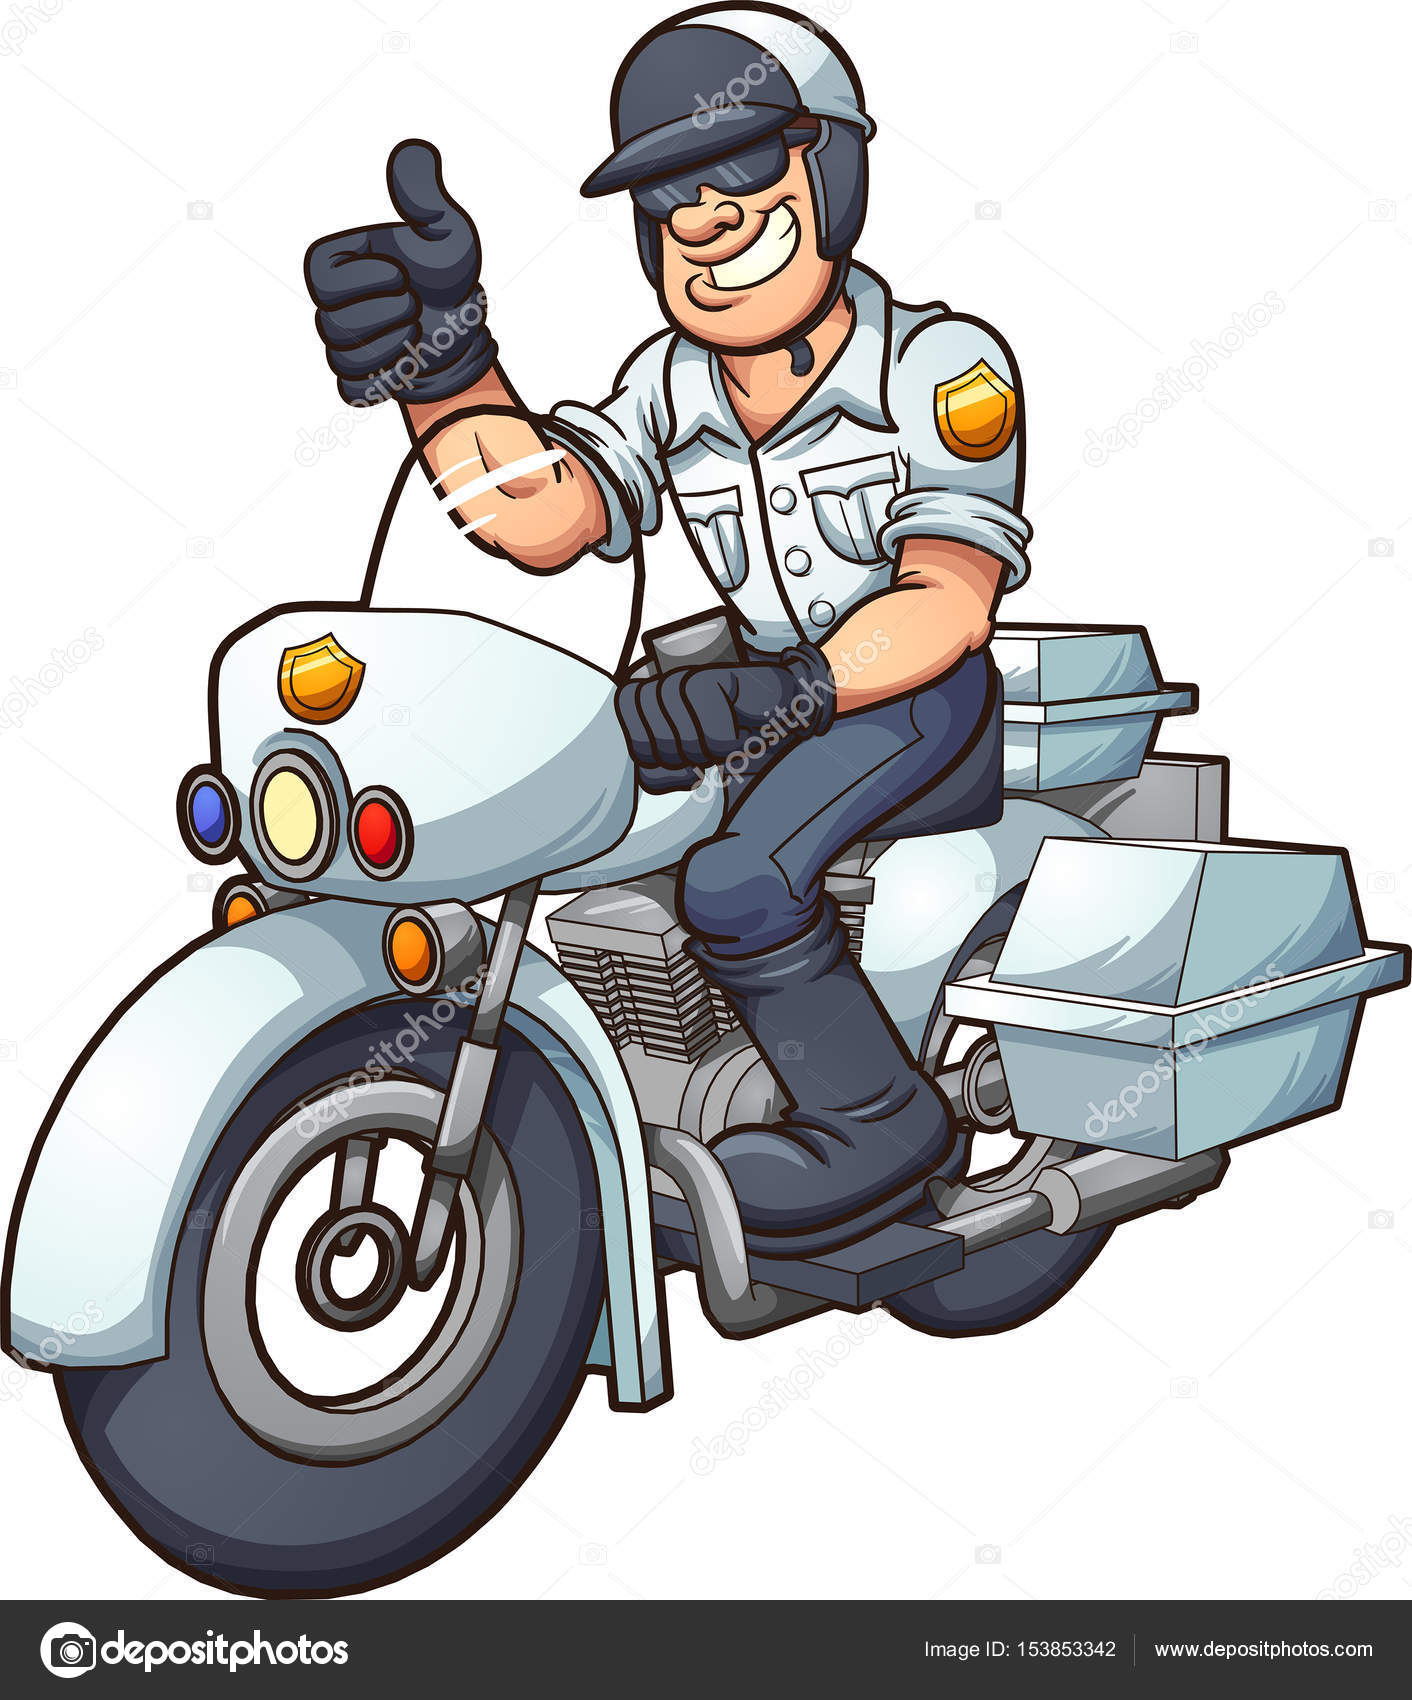 Cop Stock Quote | Cartoon Motorcycle Cop Stock Vector C Memoangeles 153853342